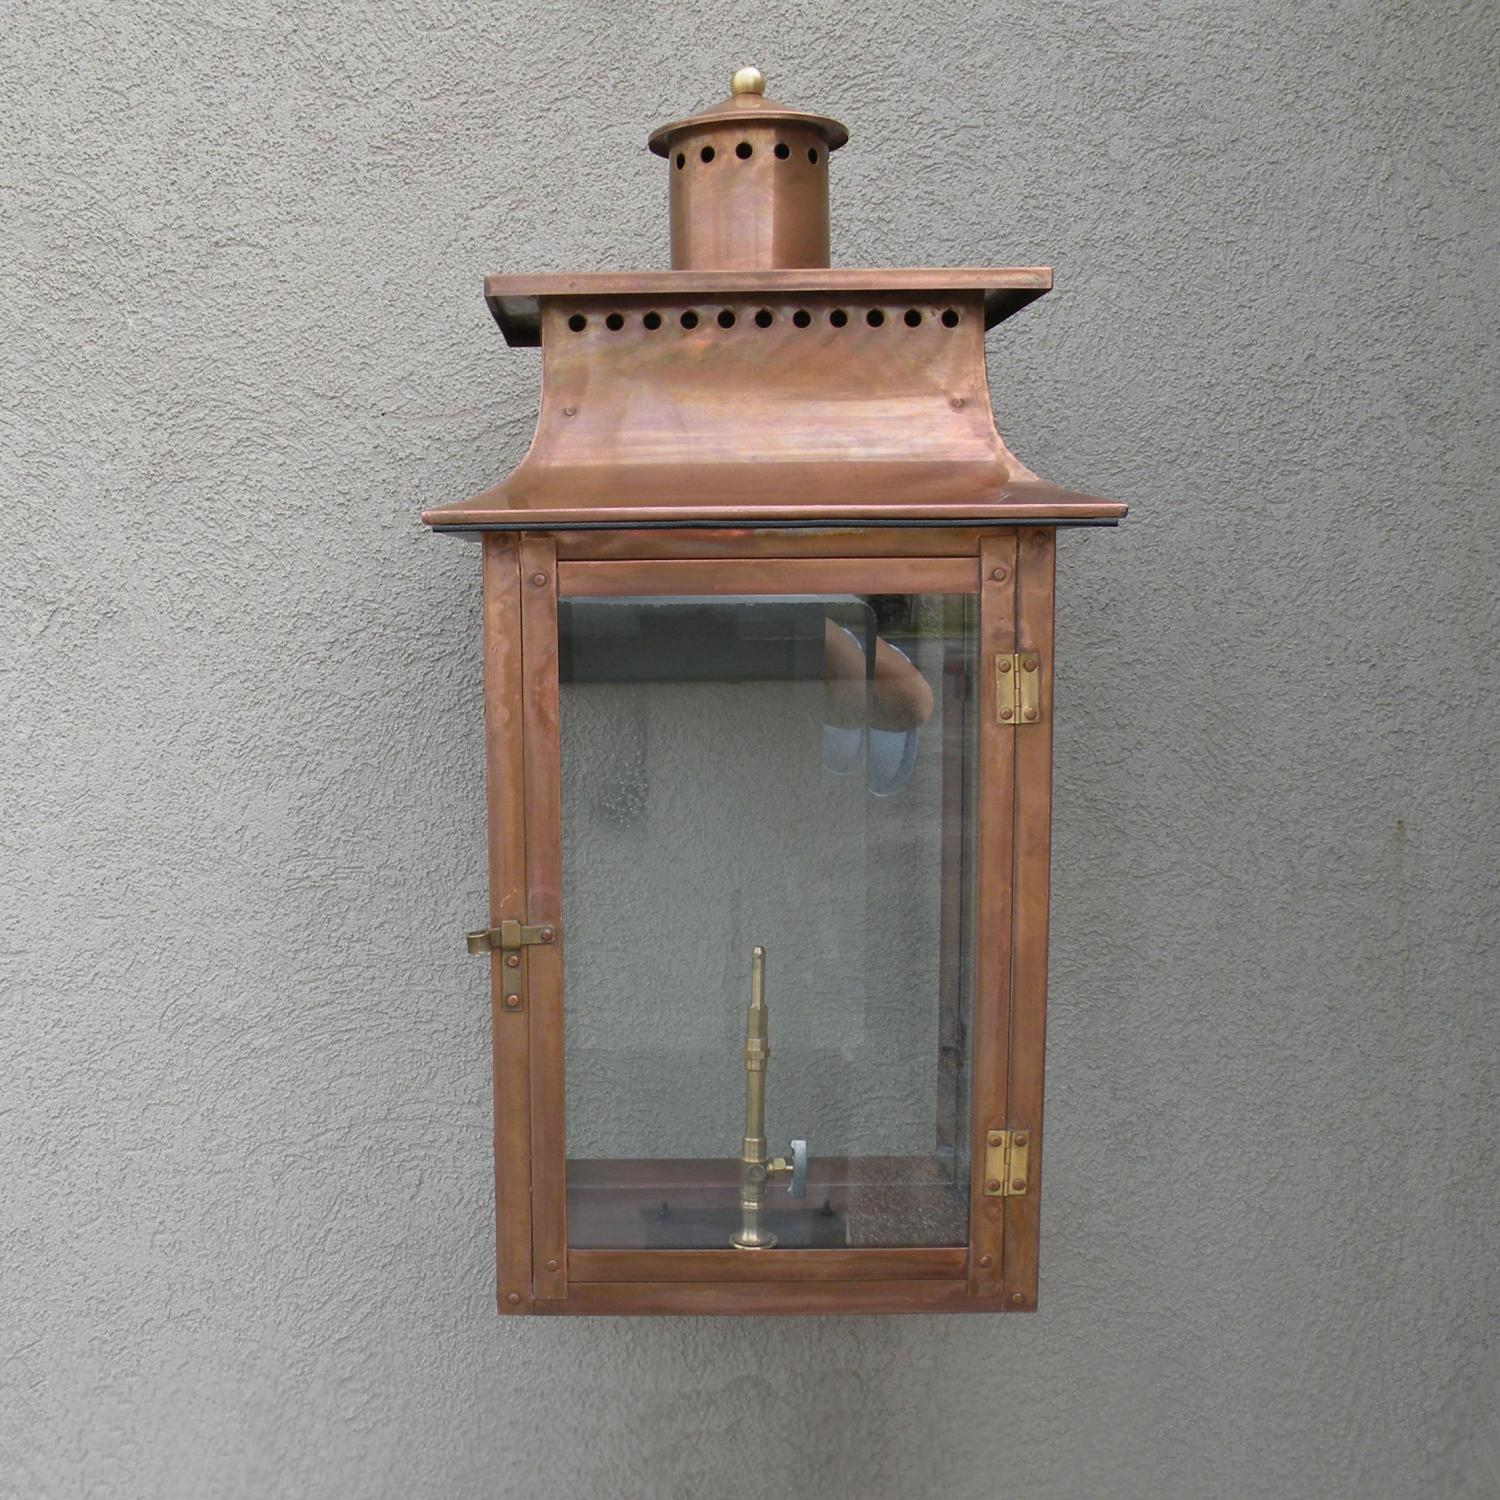 Regency GL26 Faye Rue Large Propane Gas Light With Open Flame Burner And Manual Ignition On Wall Scroll Mount